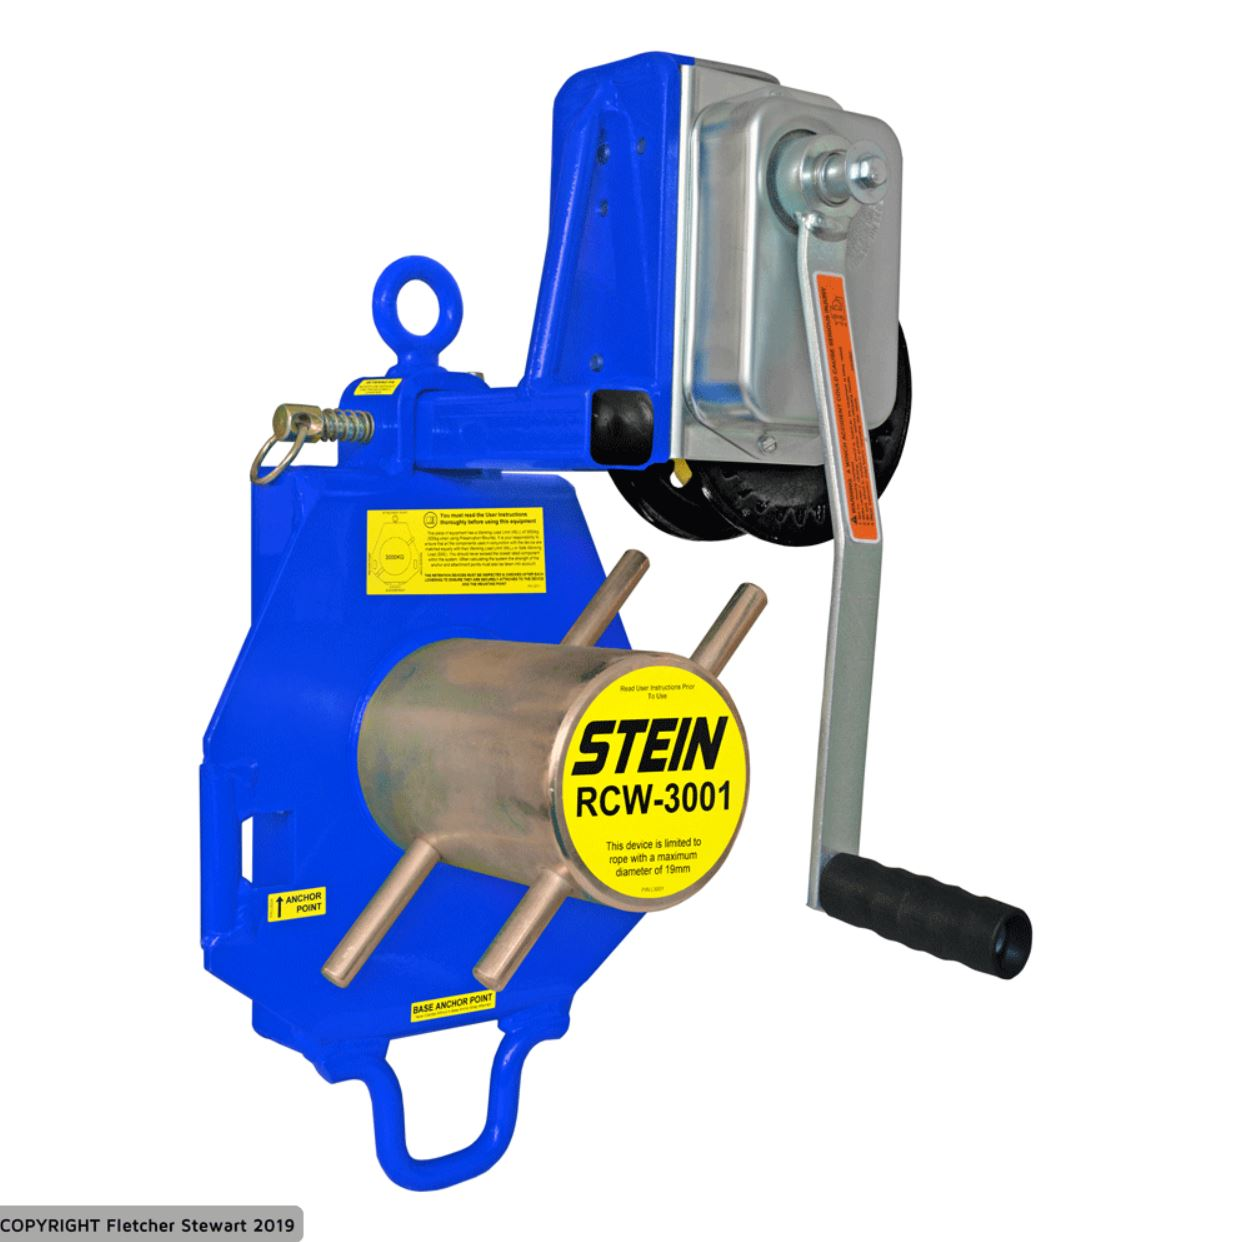 Stein RCW3001 Lowering Device with Winch Combo Kit